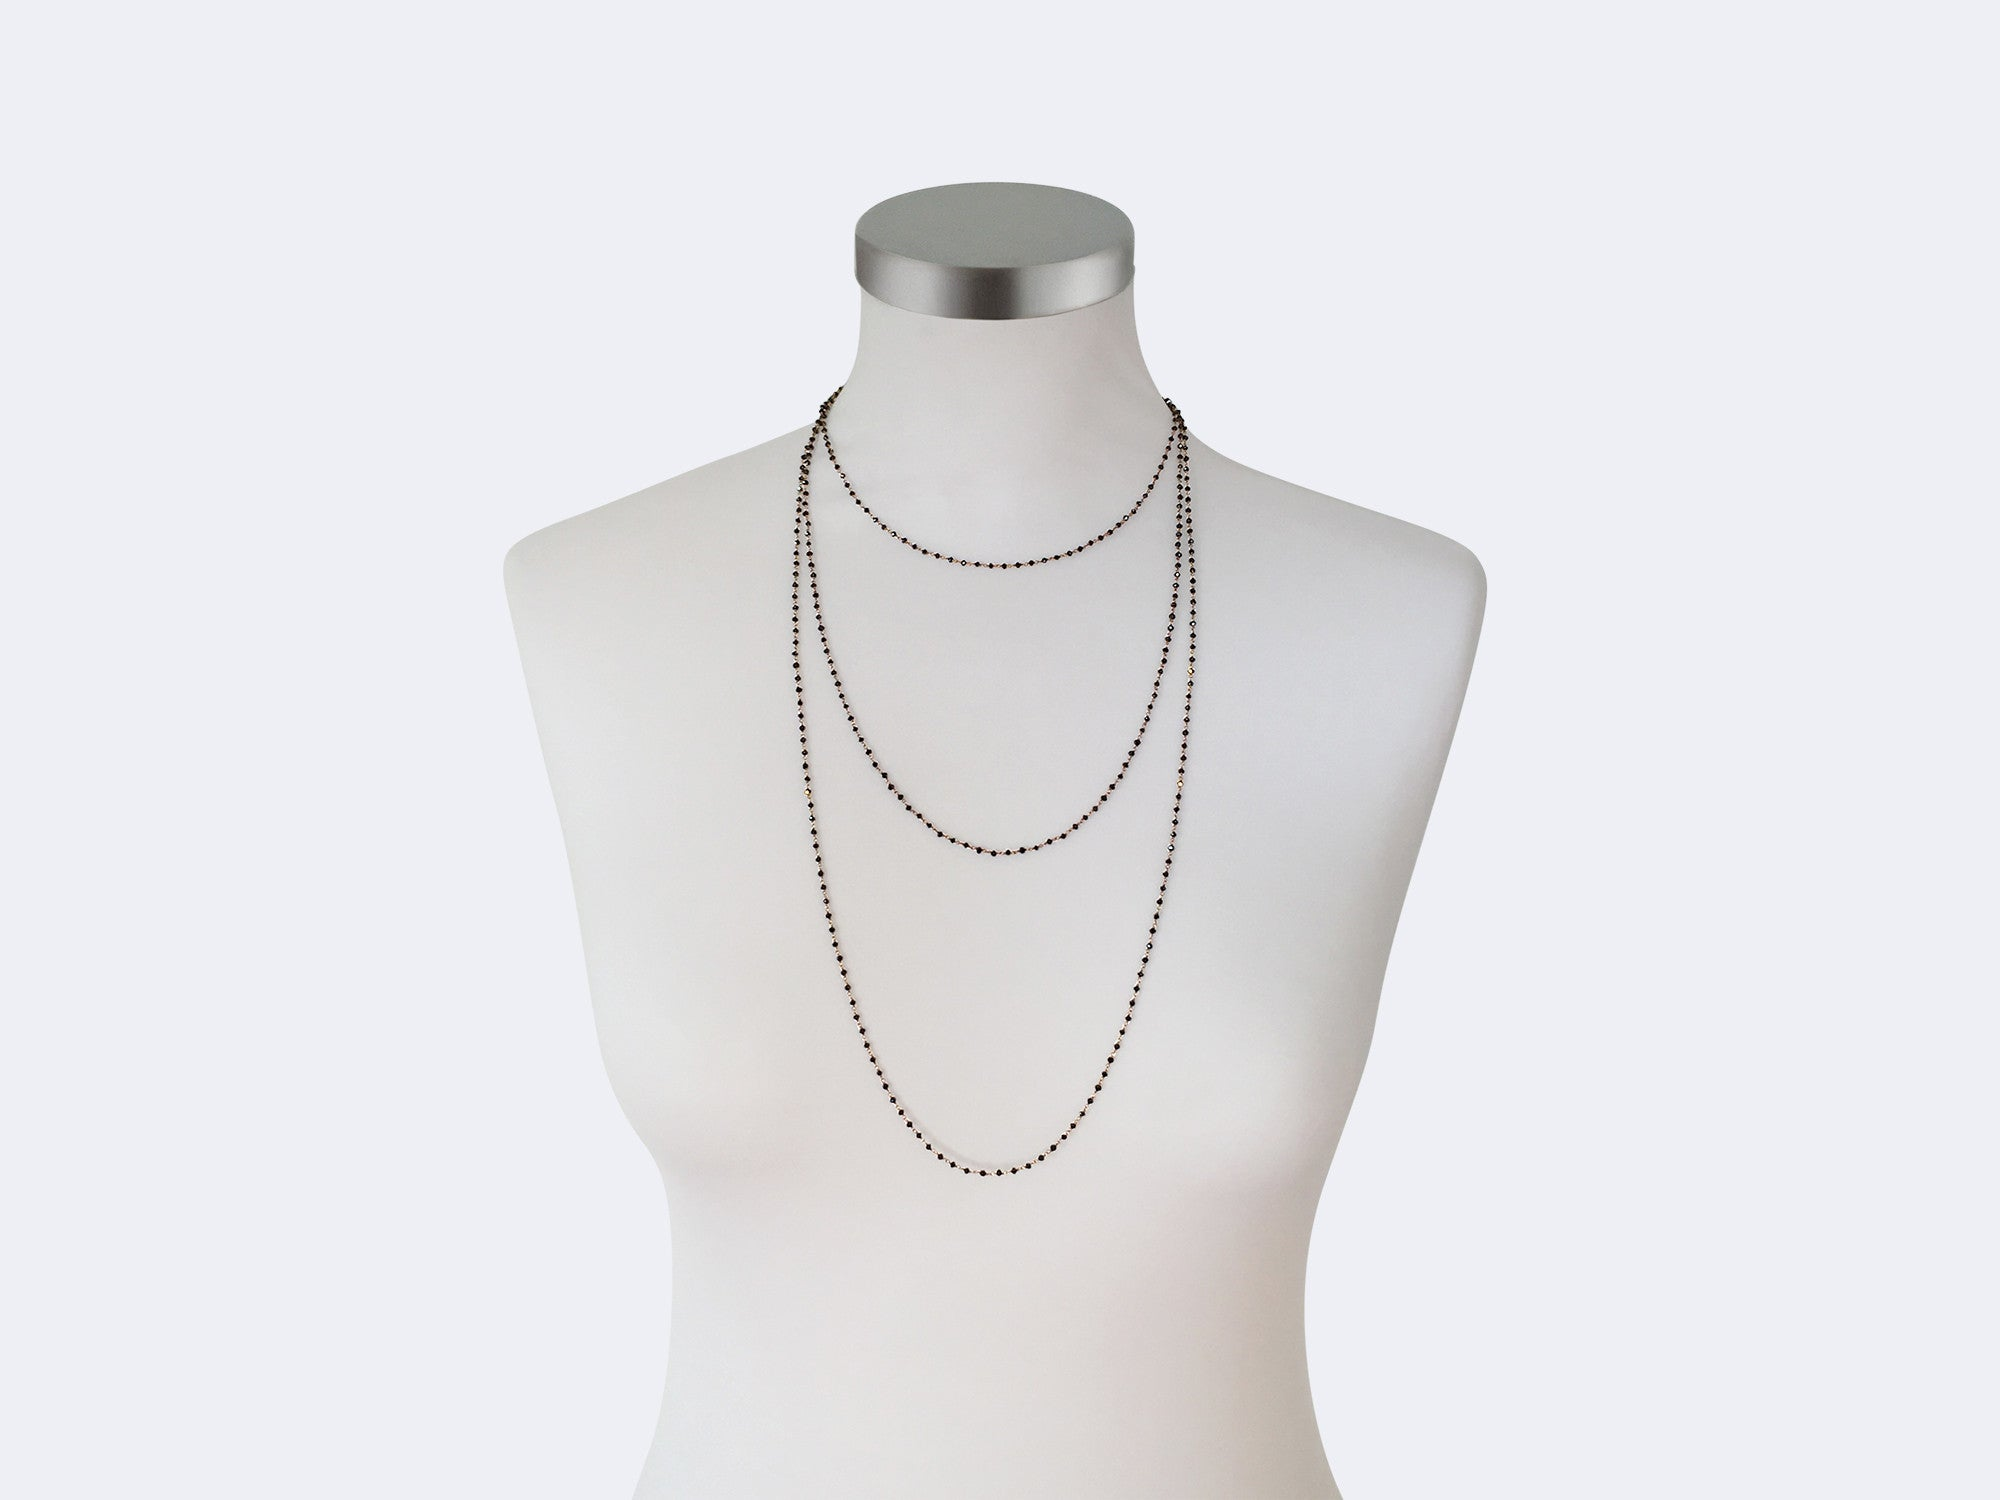 bead black choker gray s jewels and pearl cultured nyr necklace christies diamond online